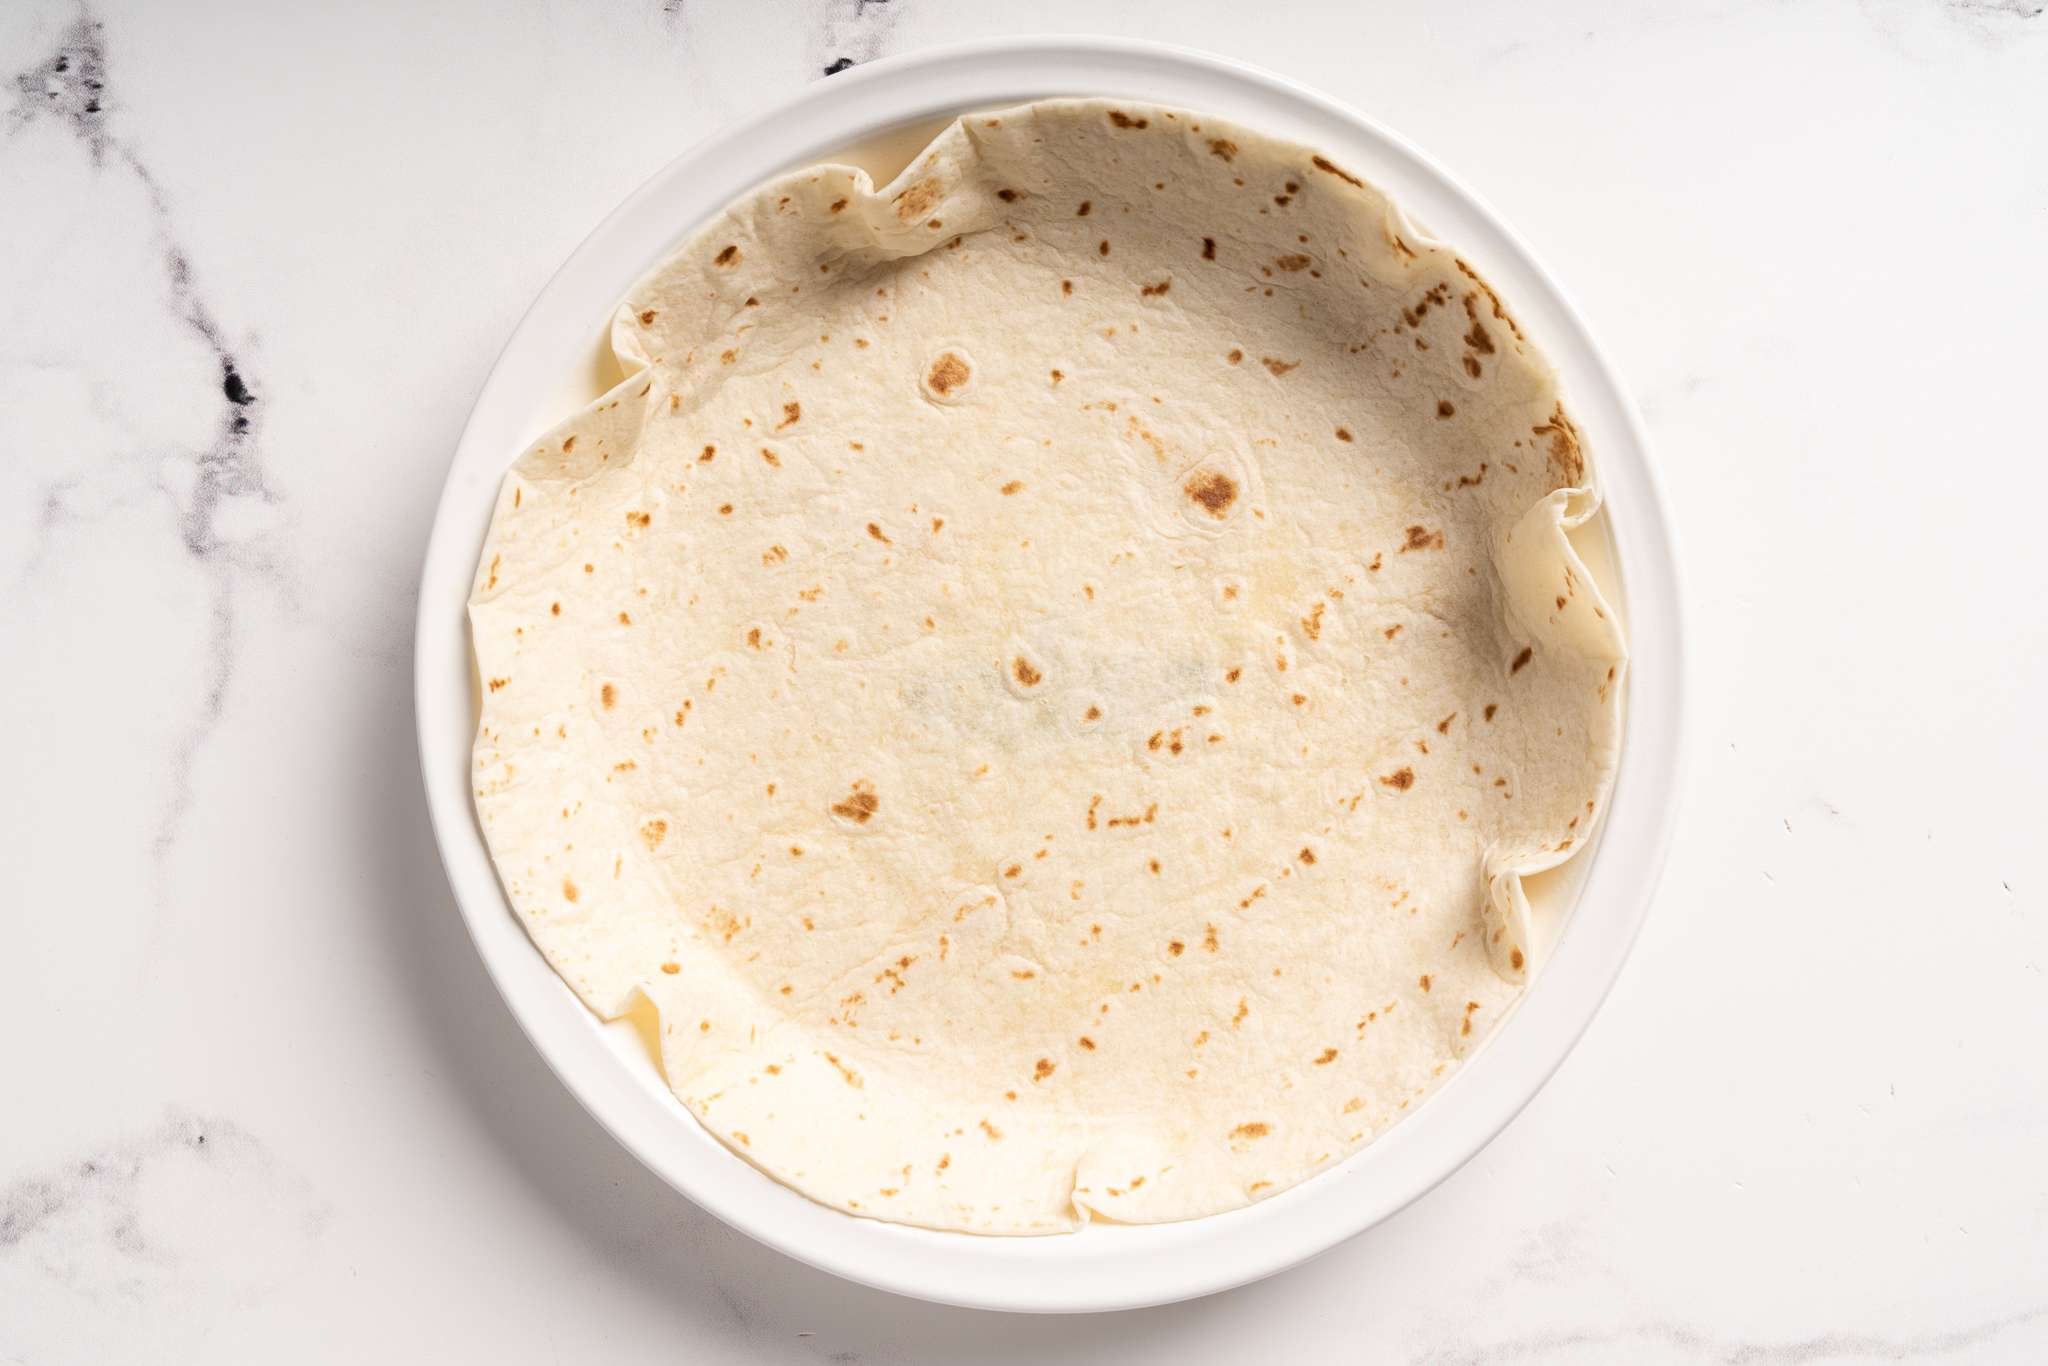 A pie plate filled with a tortilla